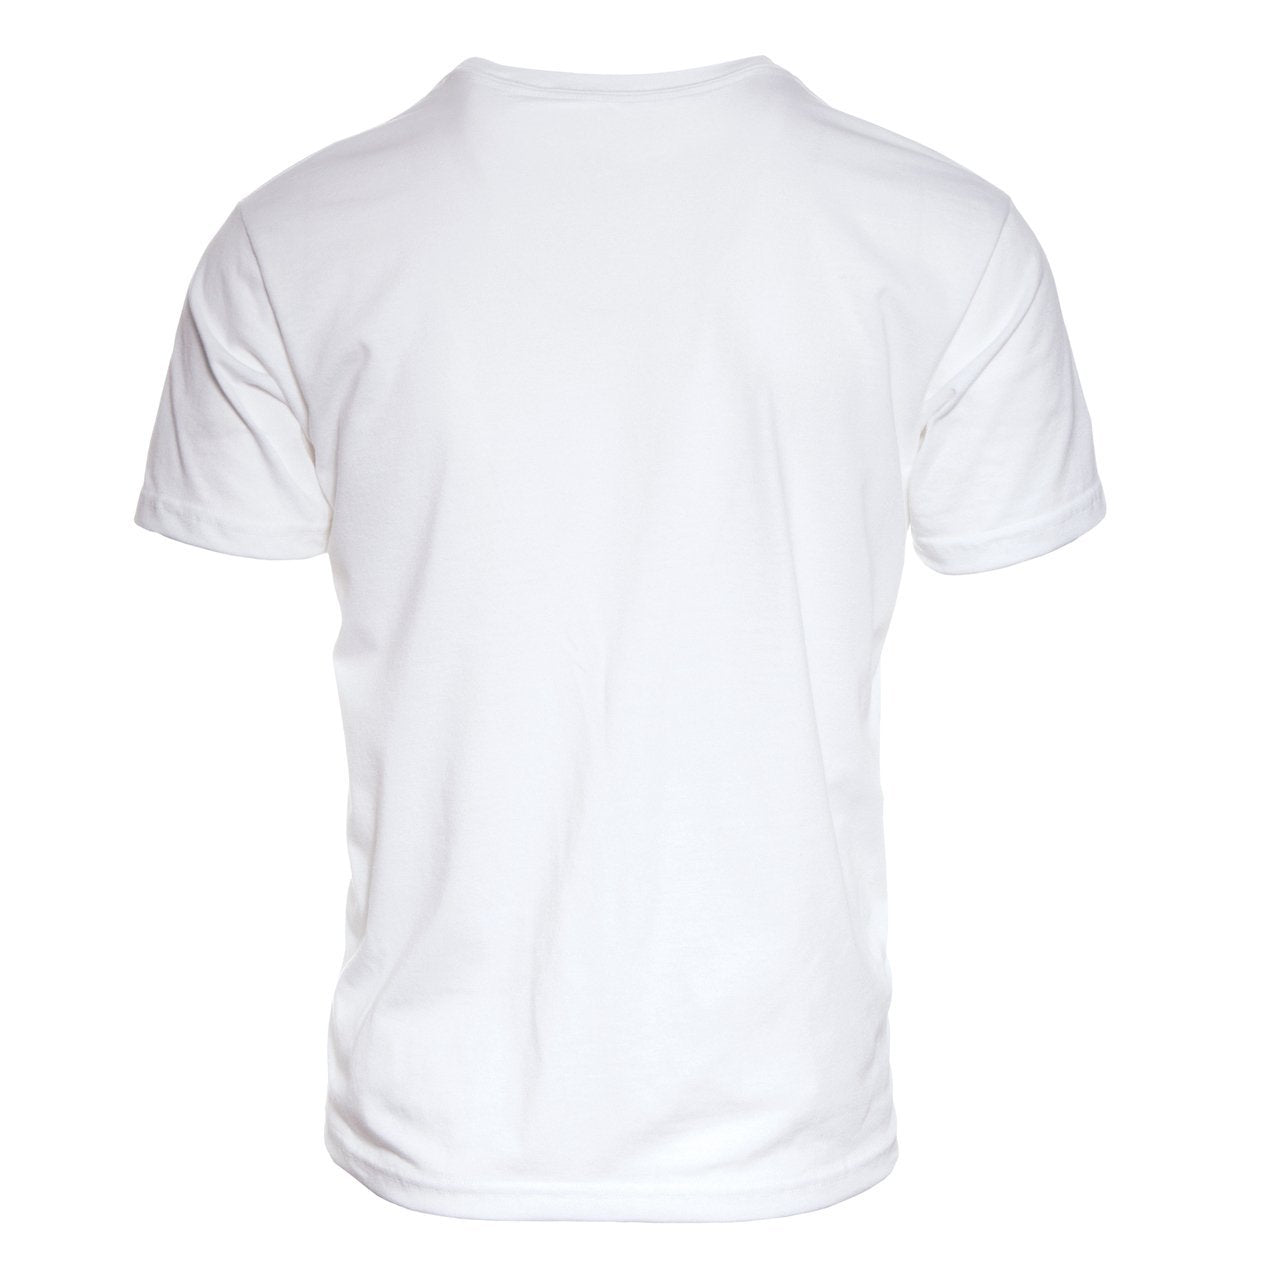 PC100WH Eco REPREVE® Recycled Polyester/Cotton Crew T-Shirt - White